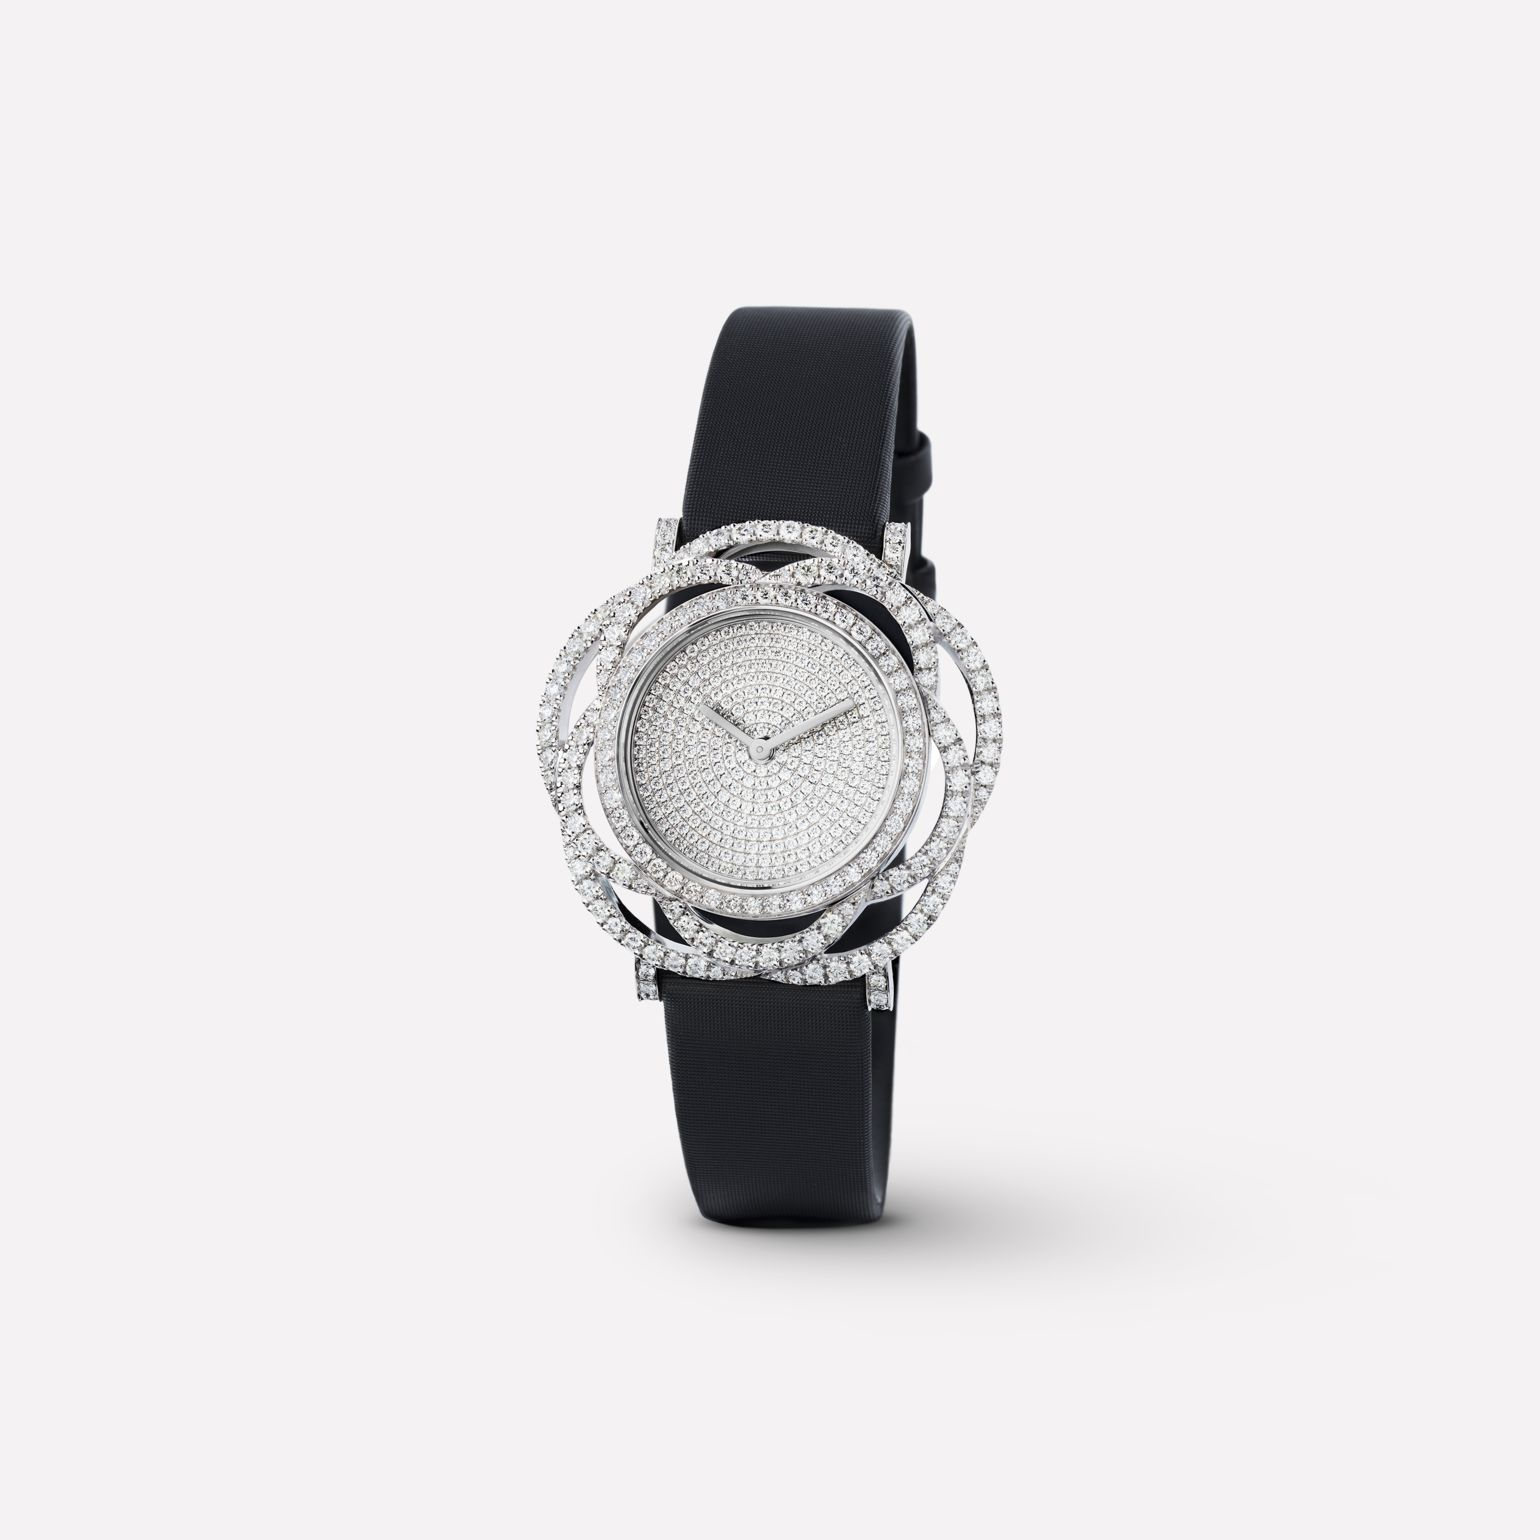 Camélia Jewelry Watch Embroidered camellia motif in 18K white gold and diamonds with pavé dial